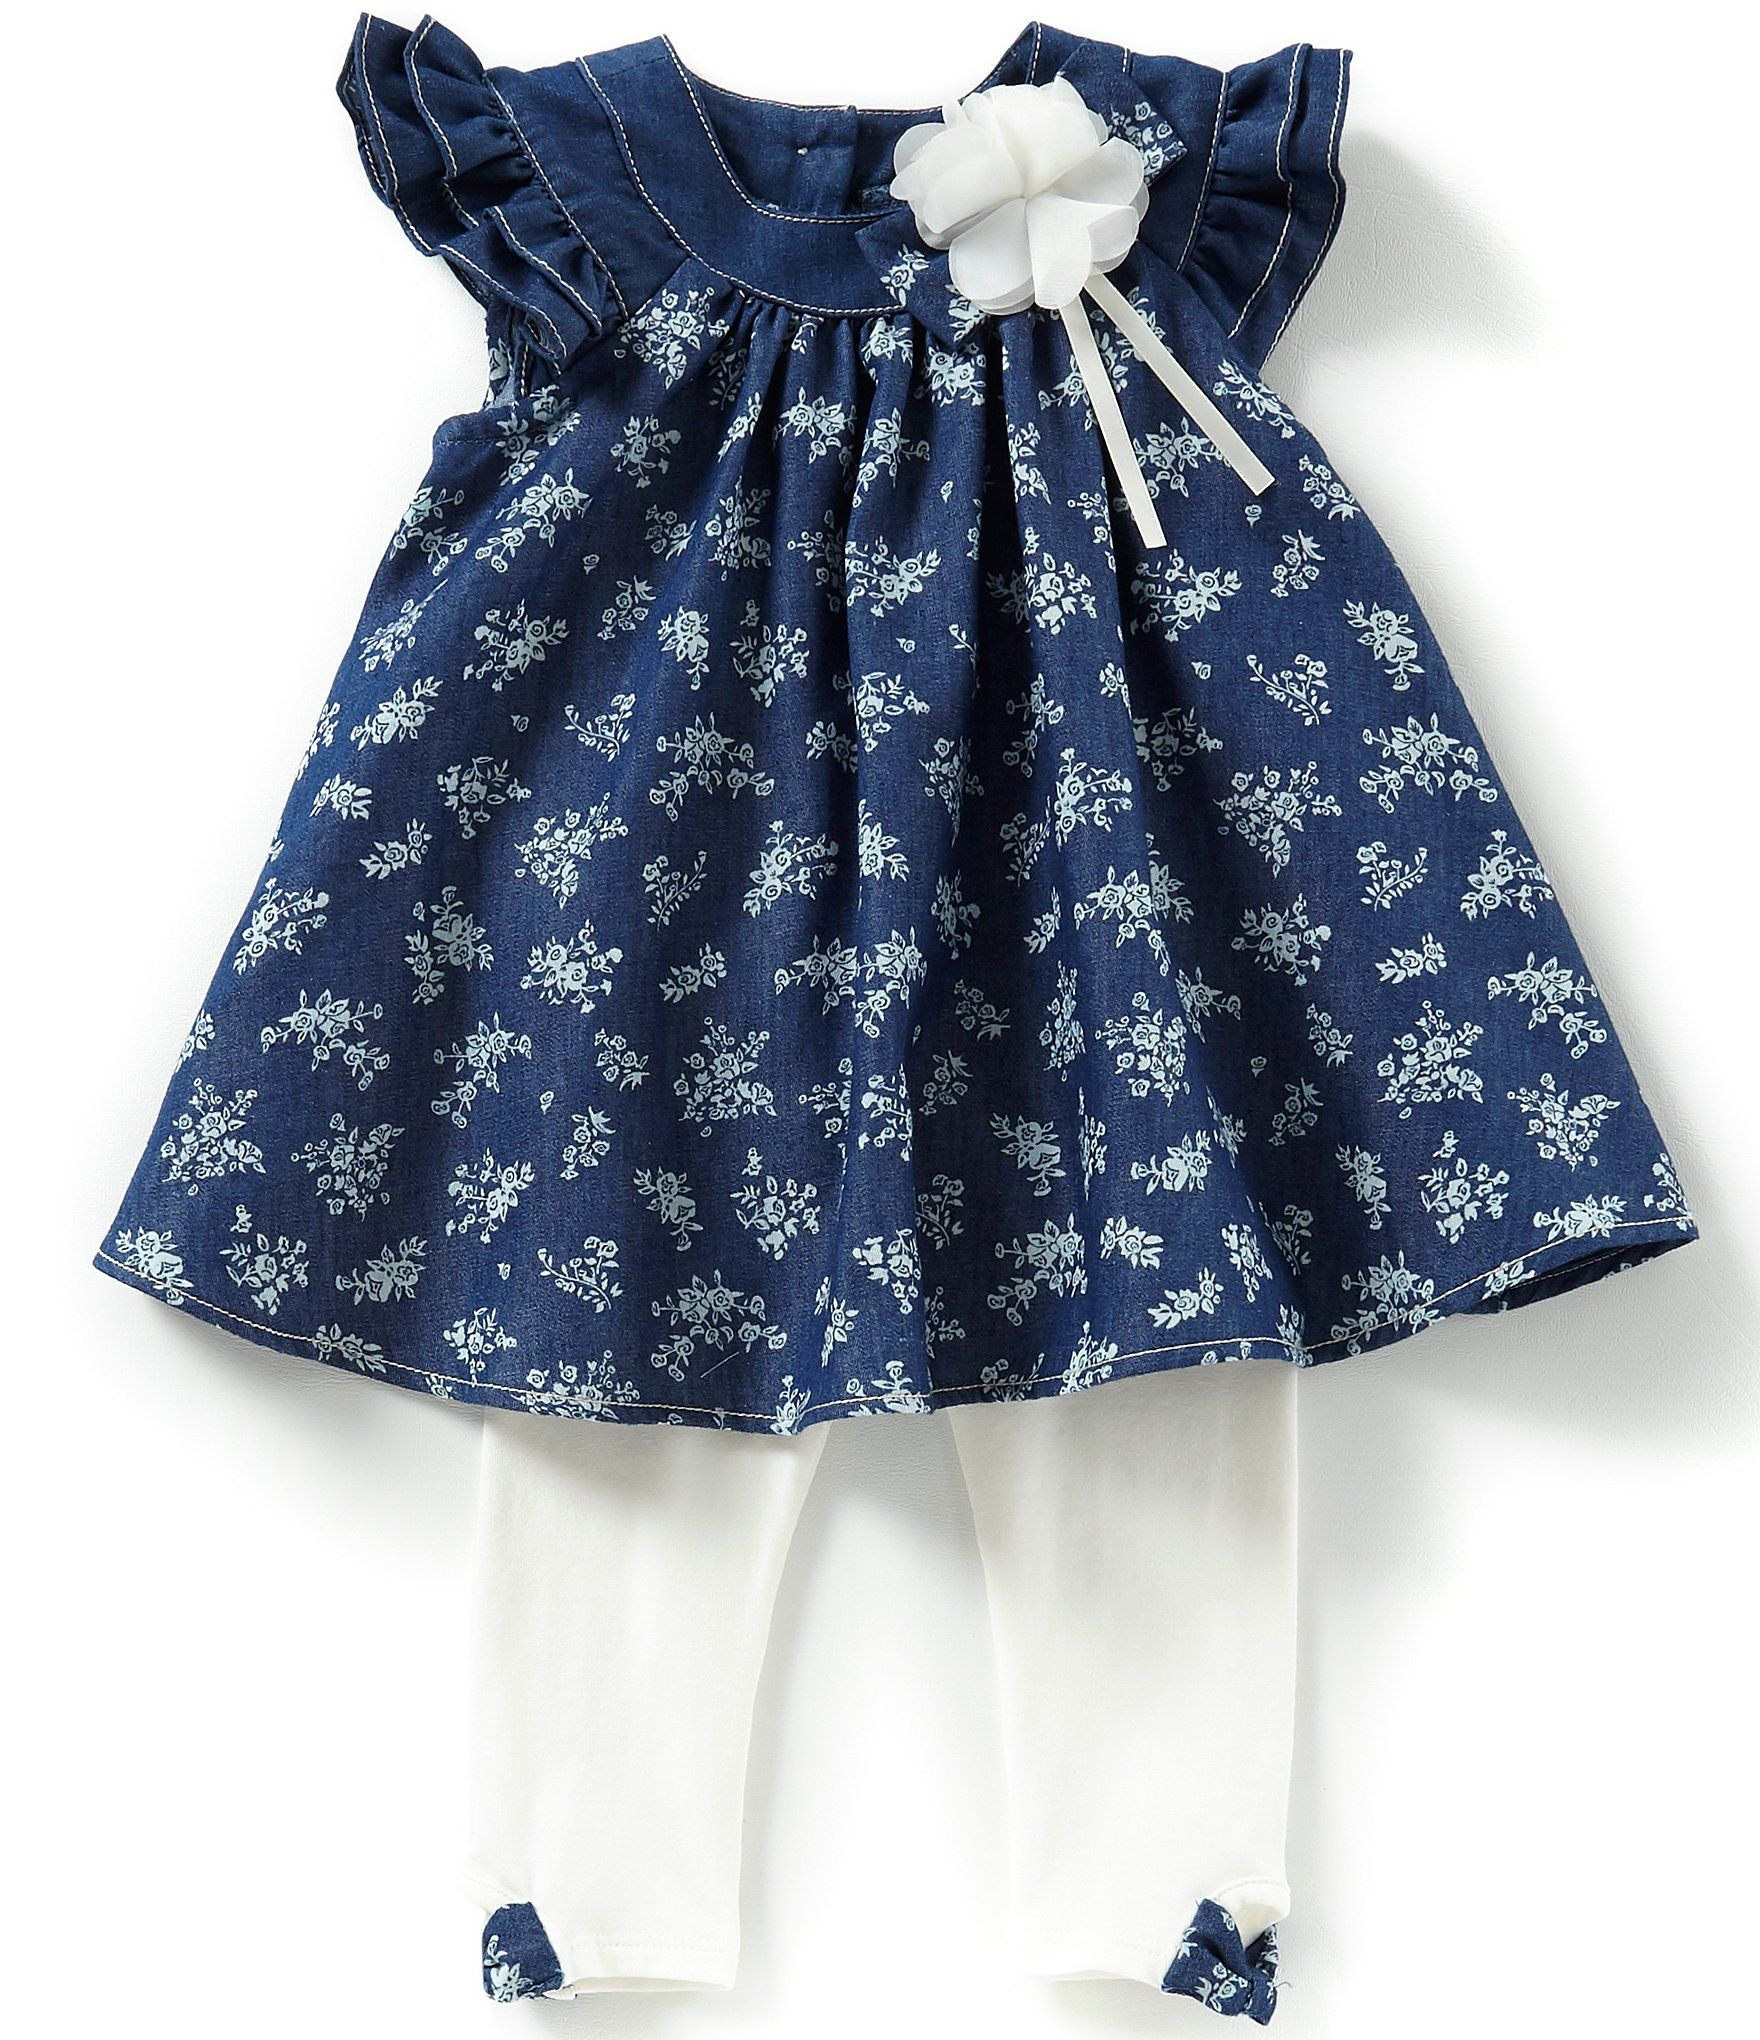 d17adacc8 Shop for Bonnie Baby Baby Girls 12-24 Months Floral-Printed Shift Dress &  Solid Leggings Set at Dillards.com. Visit Dillards.com to find clothing, ...